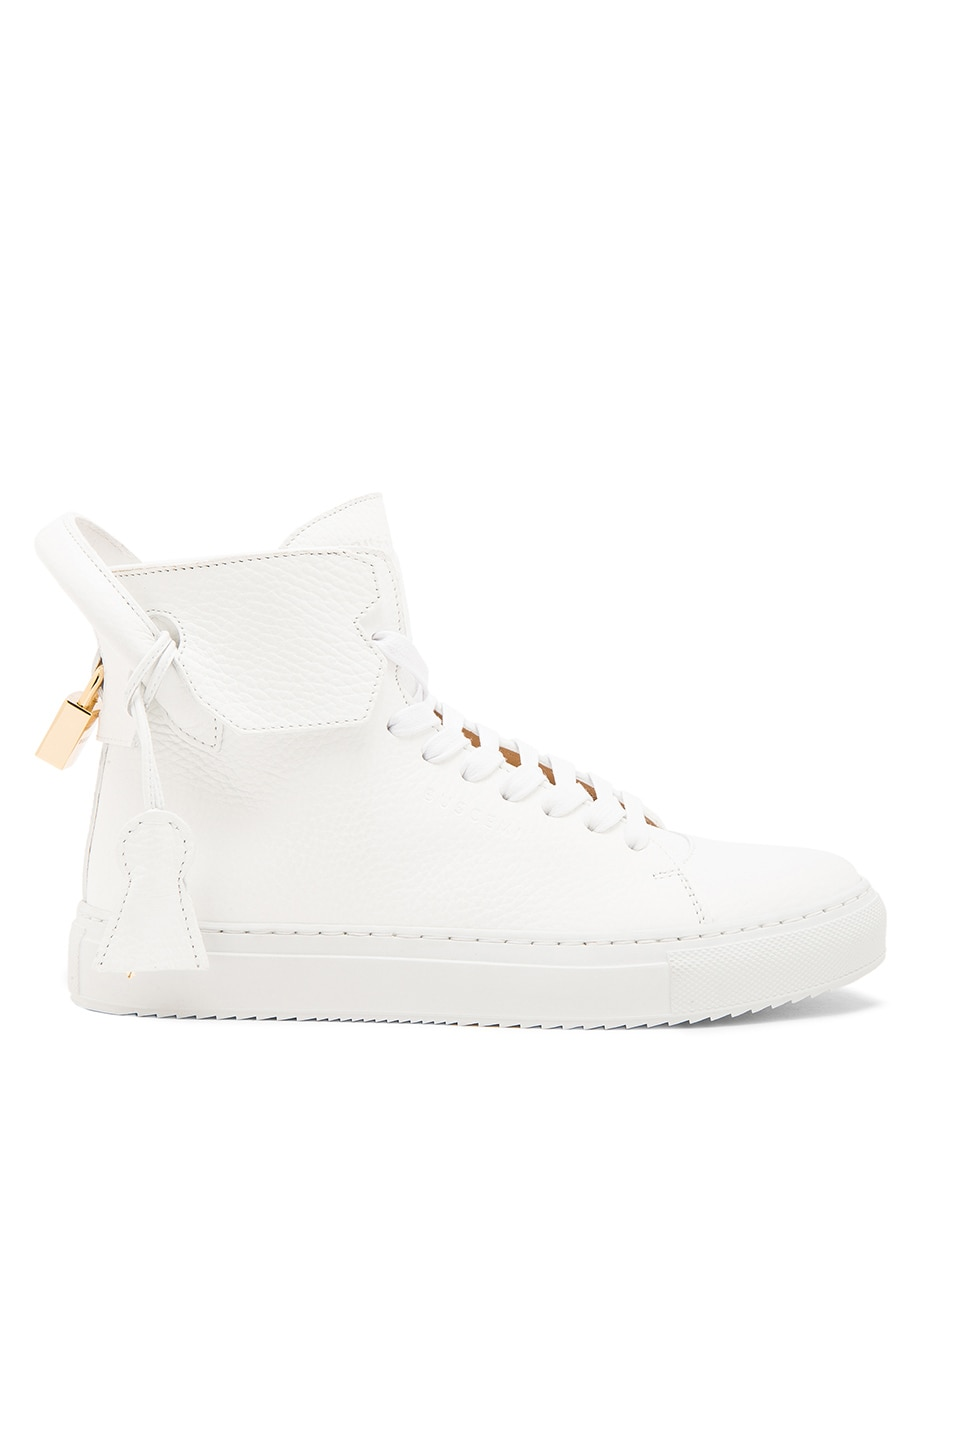 Buscemi 125mm Sneakers ZYOHIOy